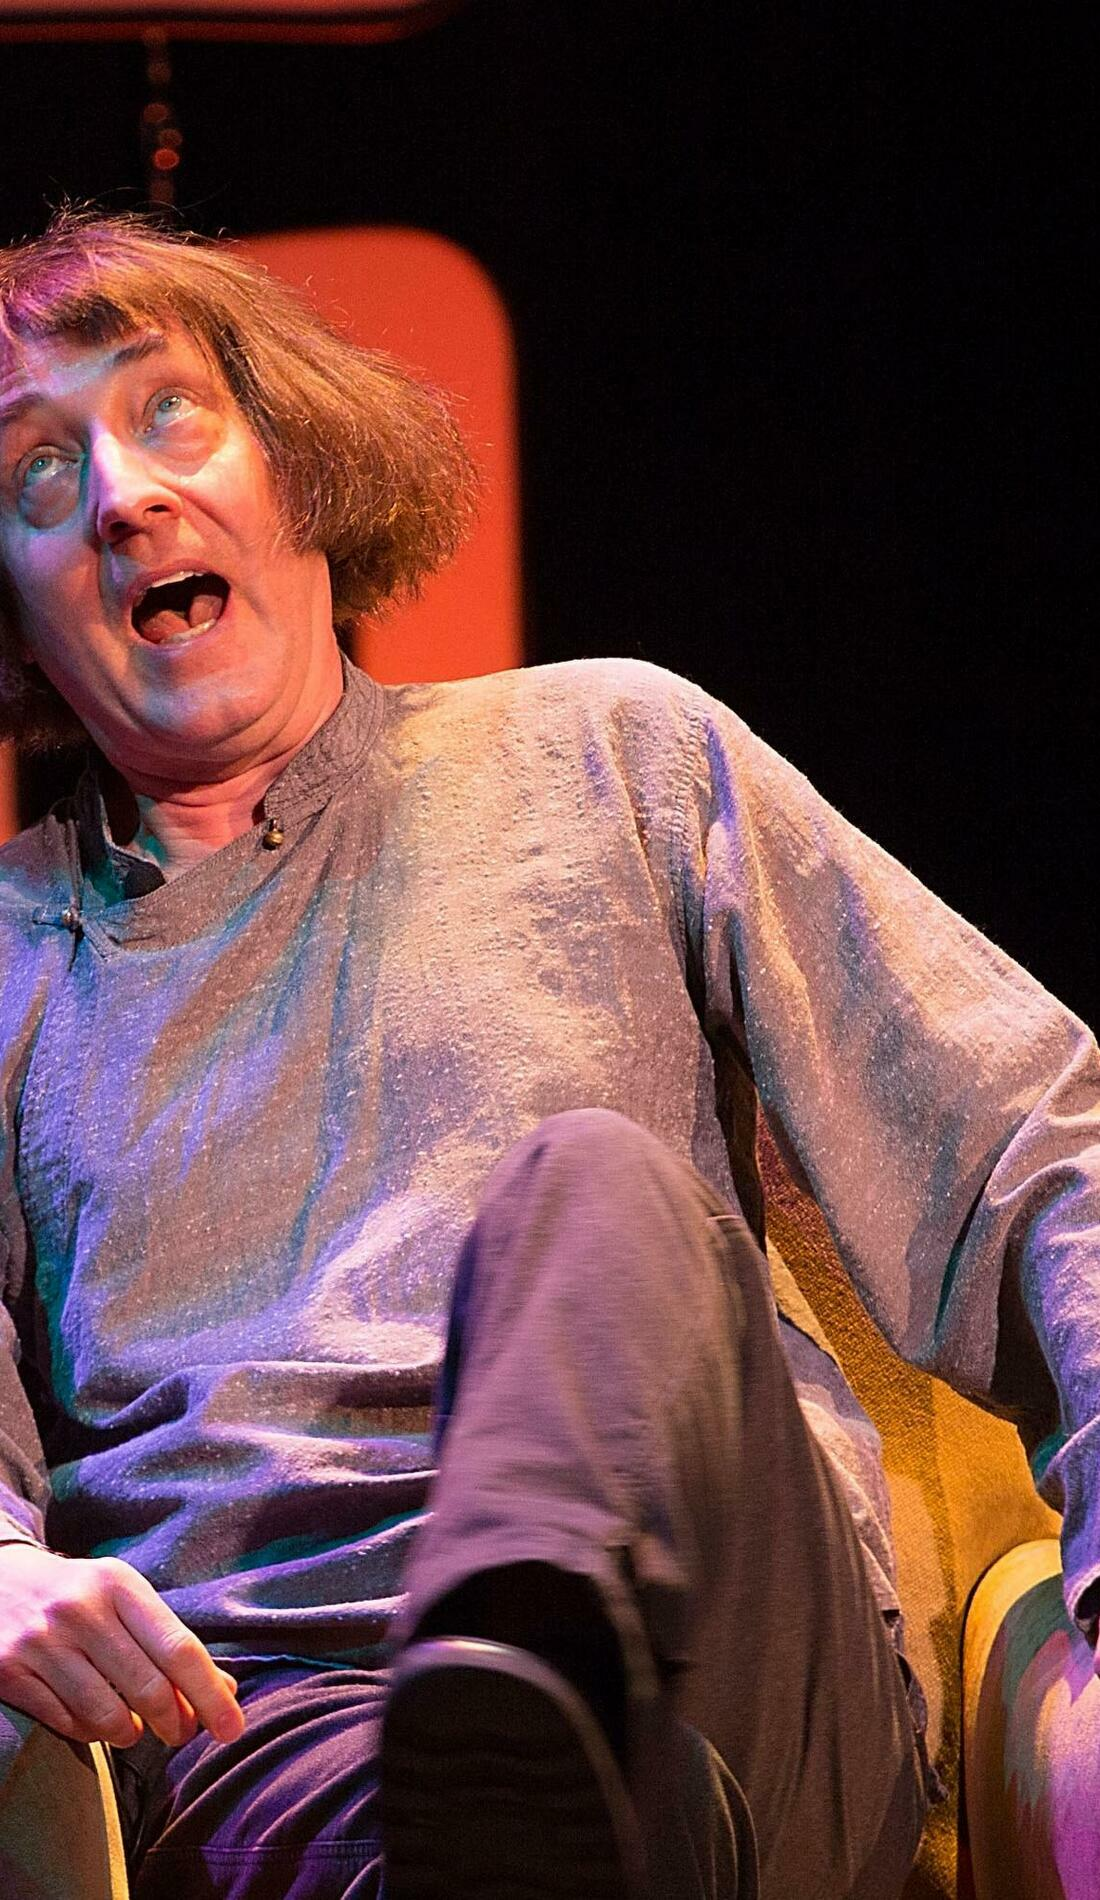 A Emo Philips live event